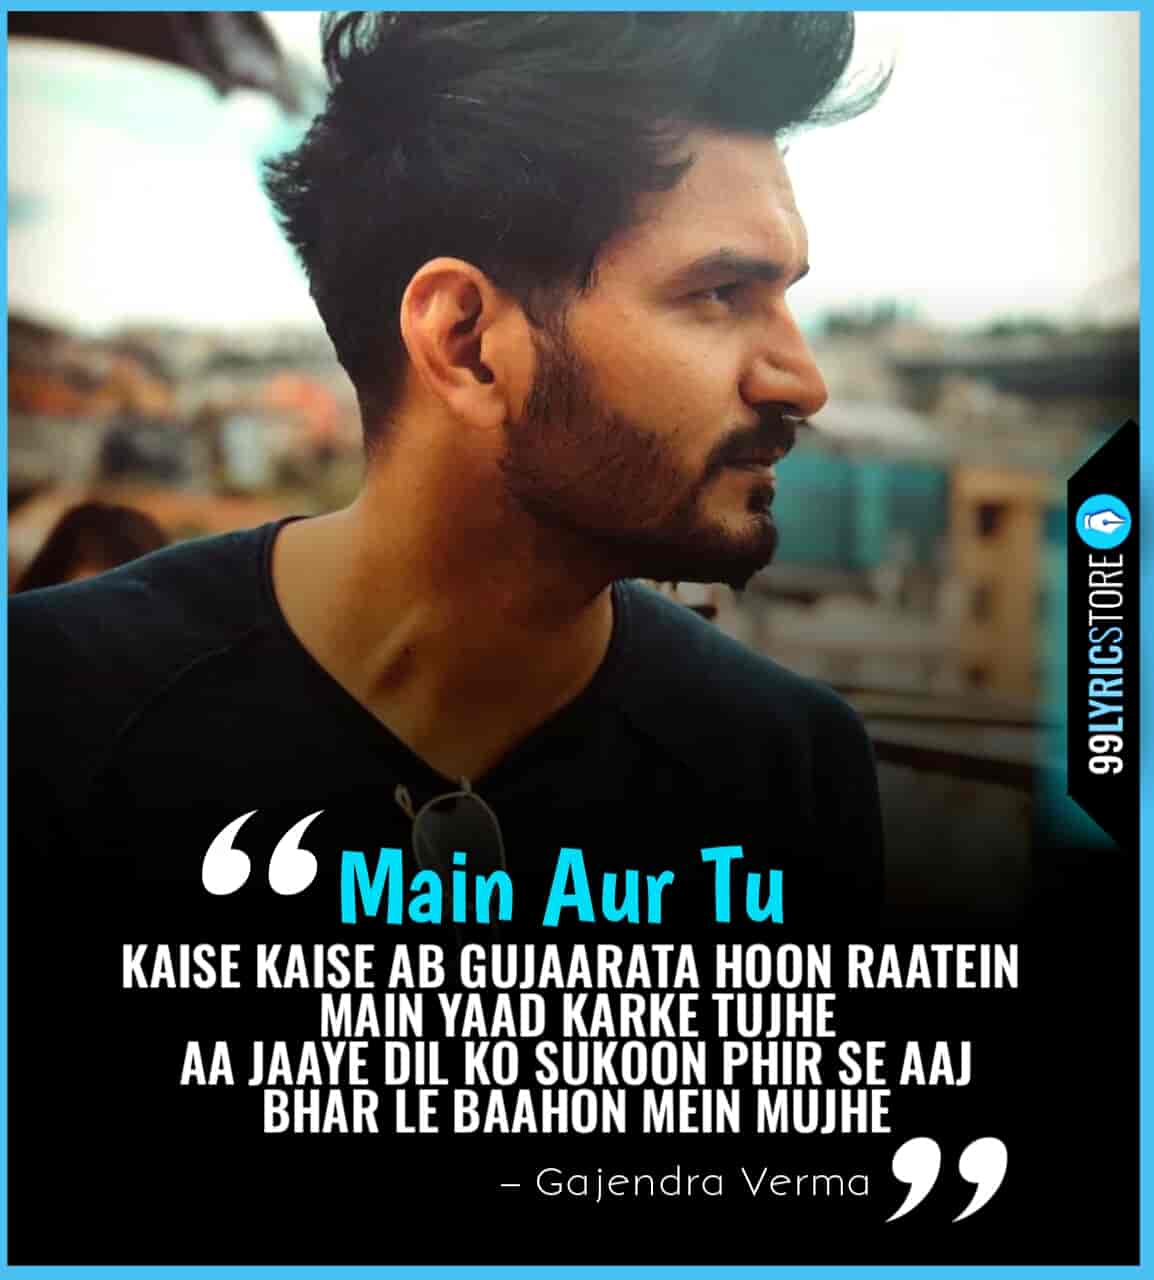 Main Aur Tu Lyrics Images by Gajendra Verma